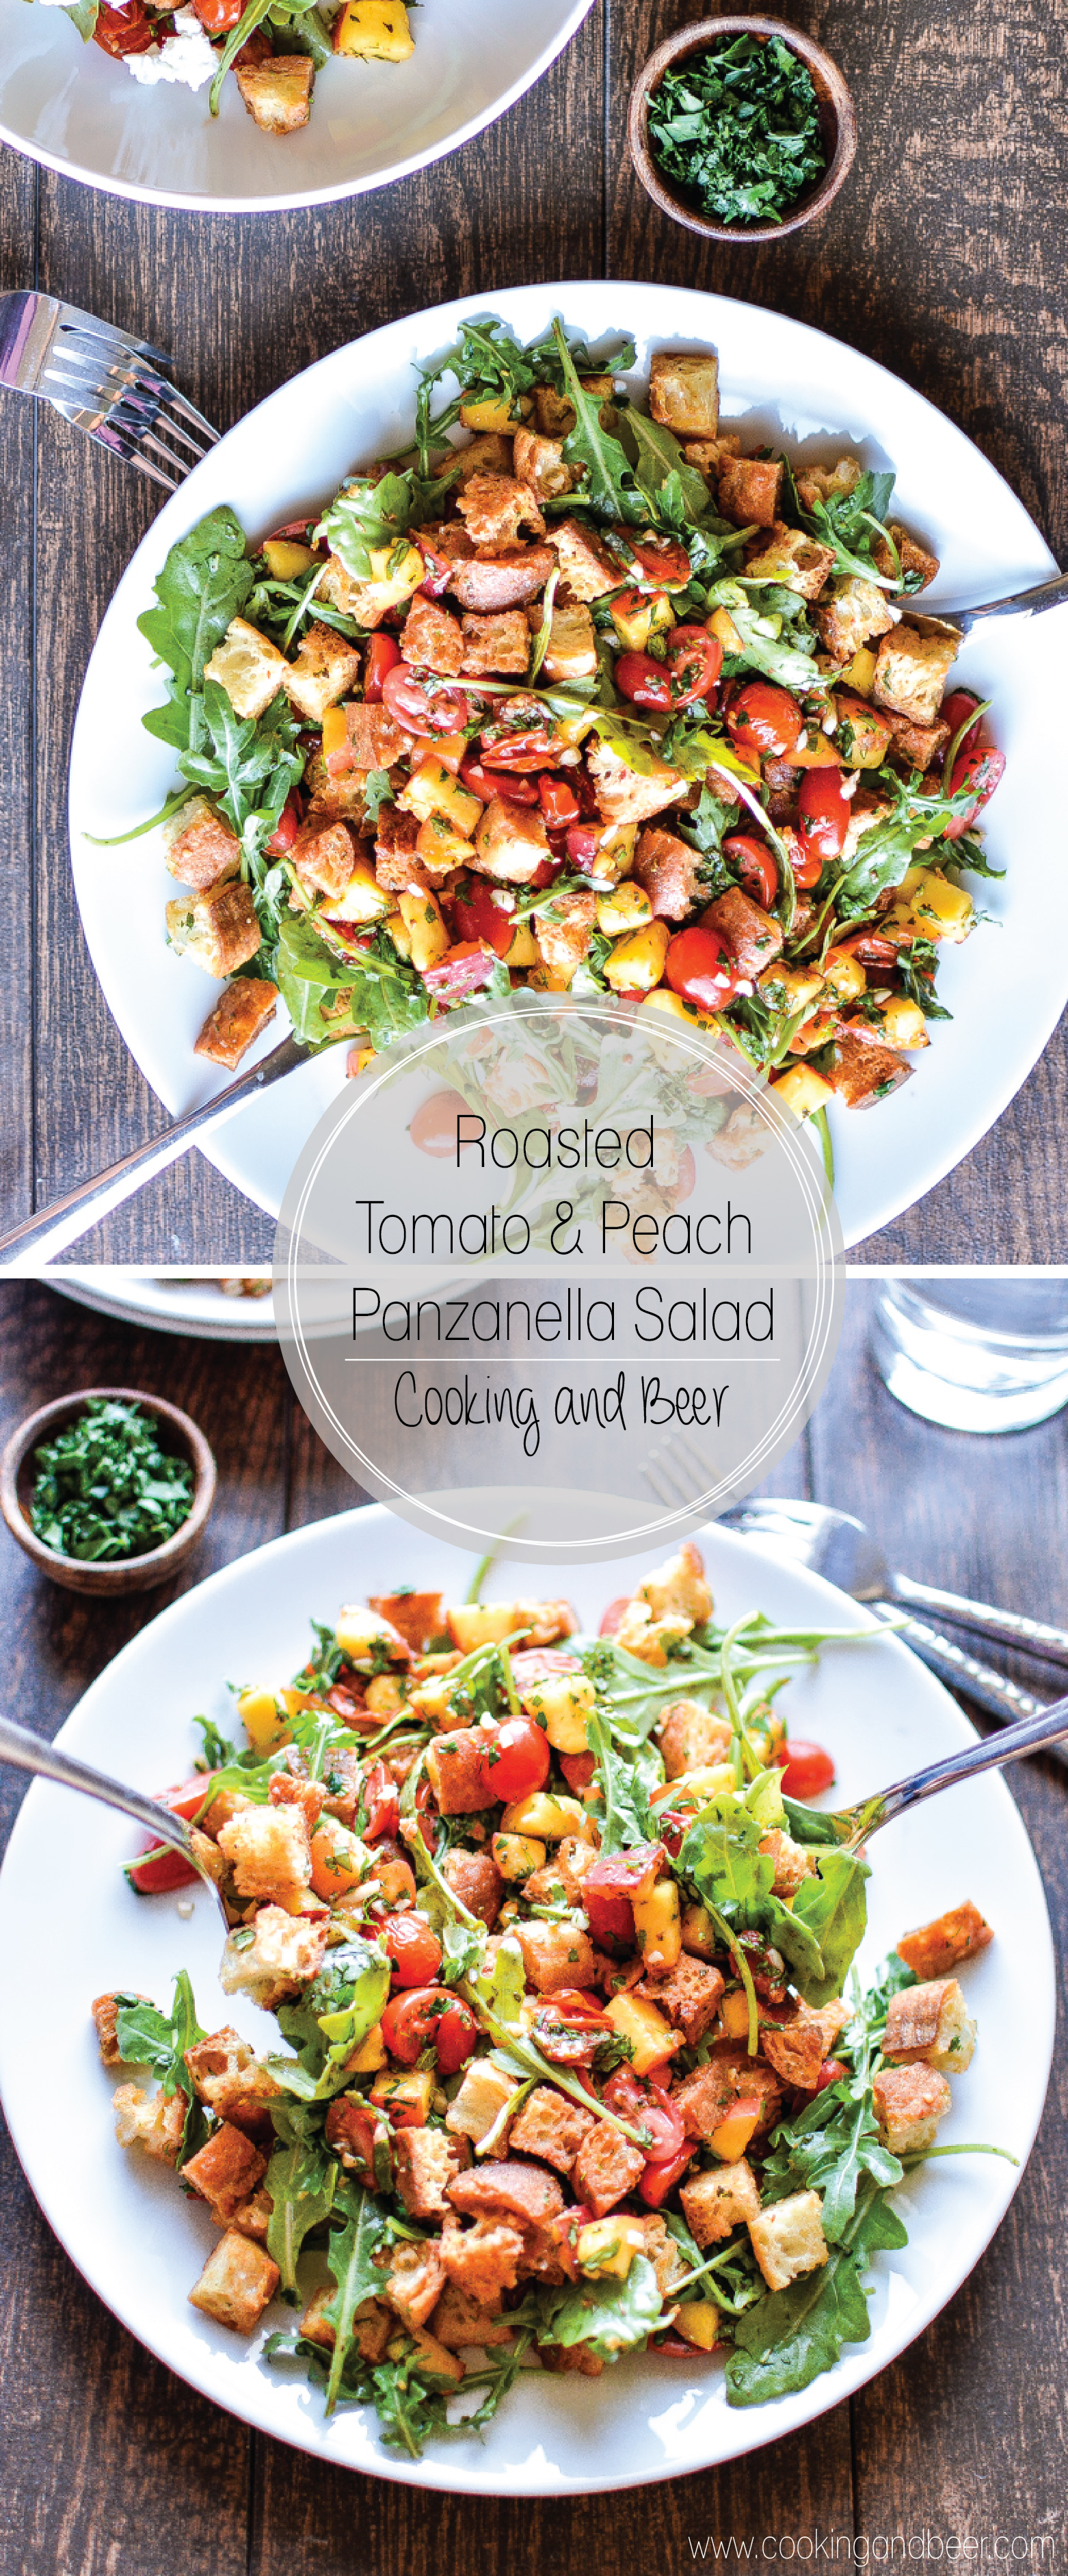 Roasted Peach Panzanella Salad with Blistered Tomatoes is a dish that's perfect for those warm summer months. | www.cookingandbeer.com